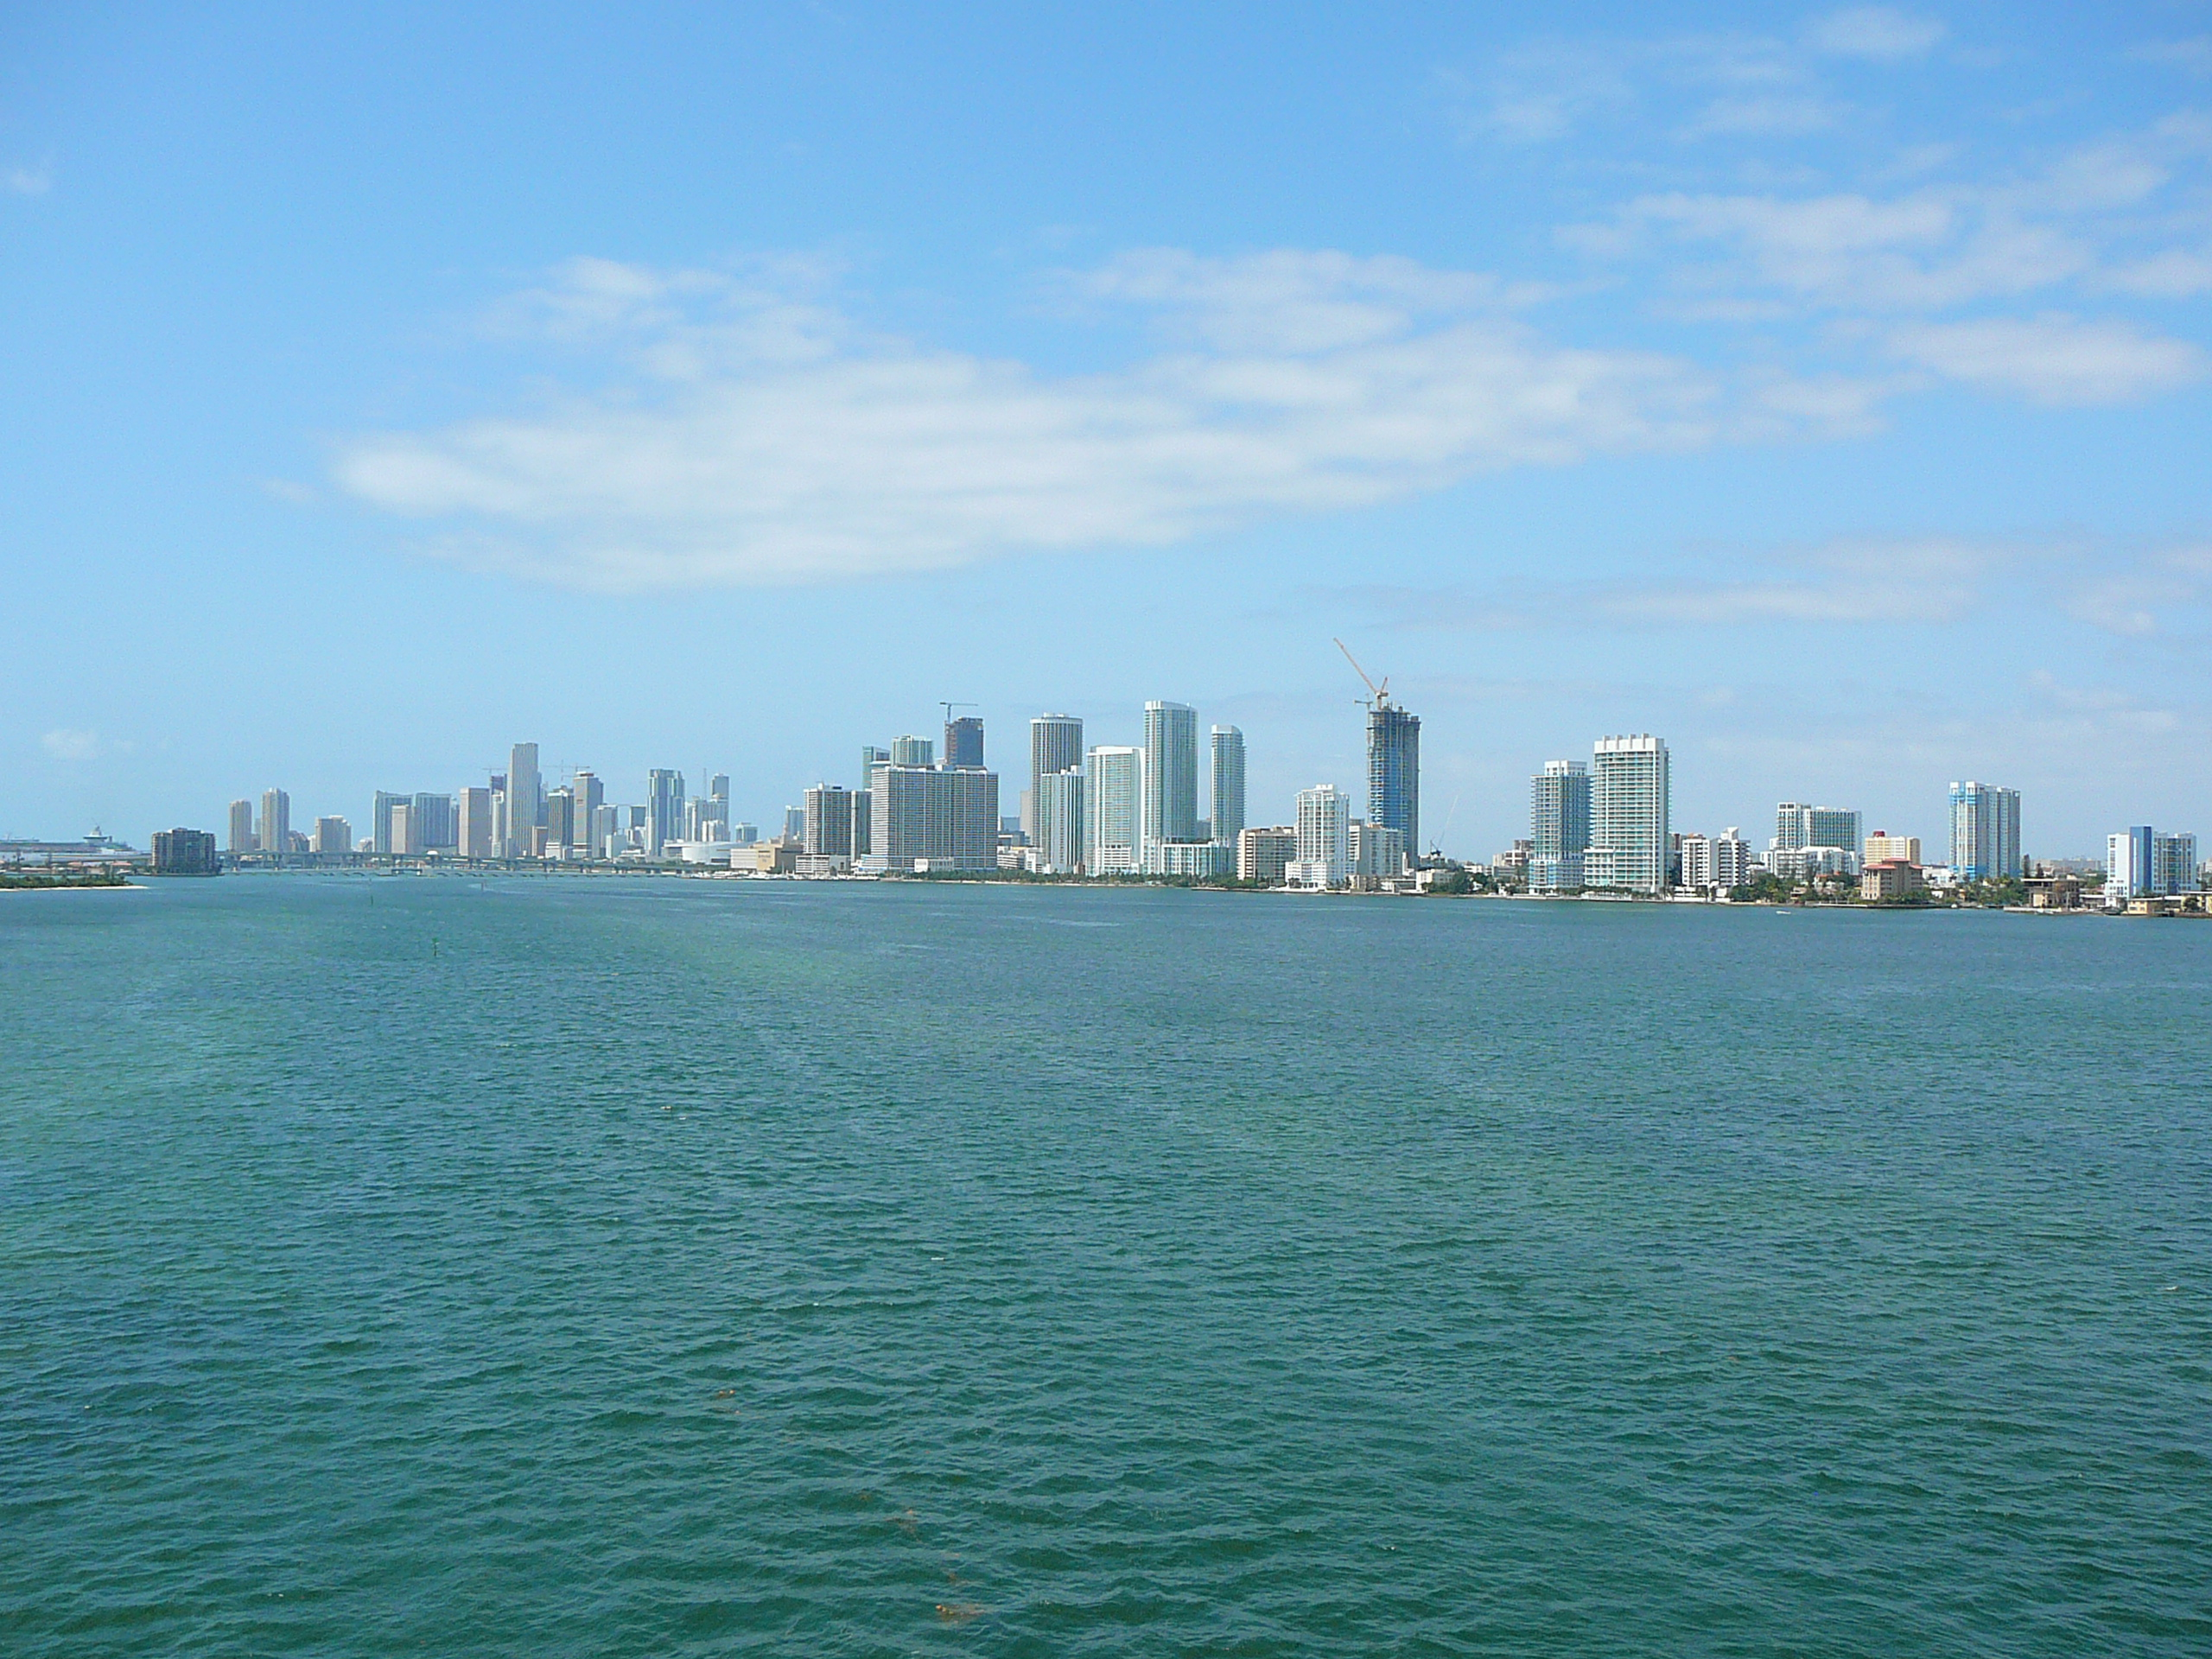 Biscayne_Bay_south